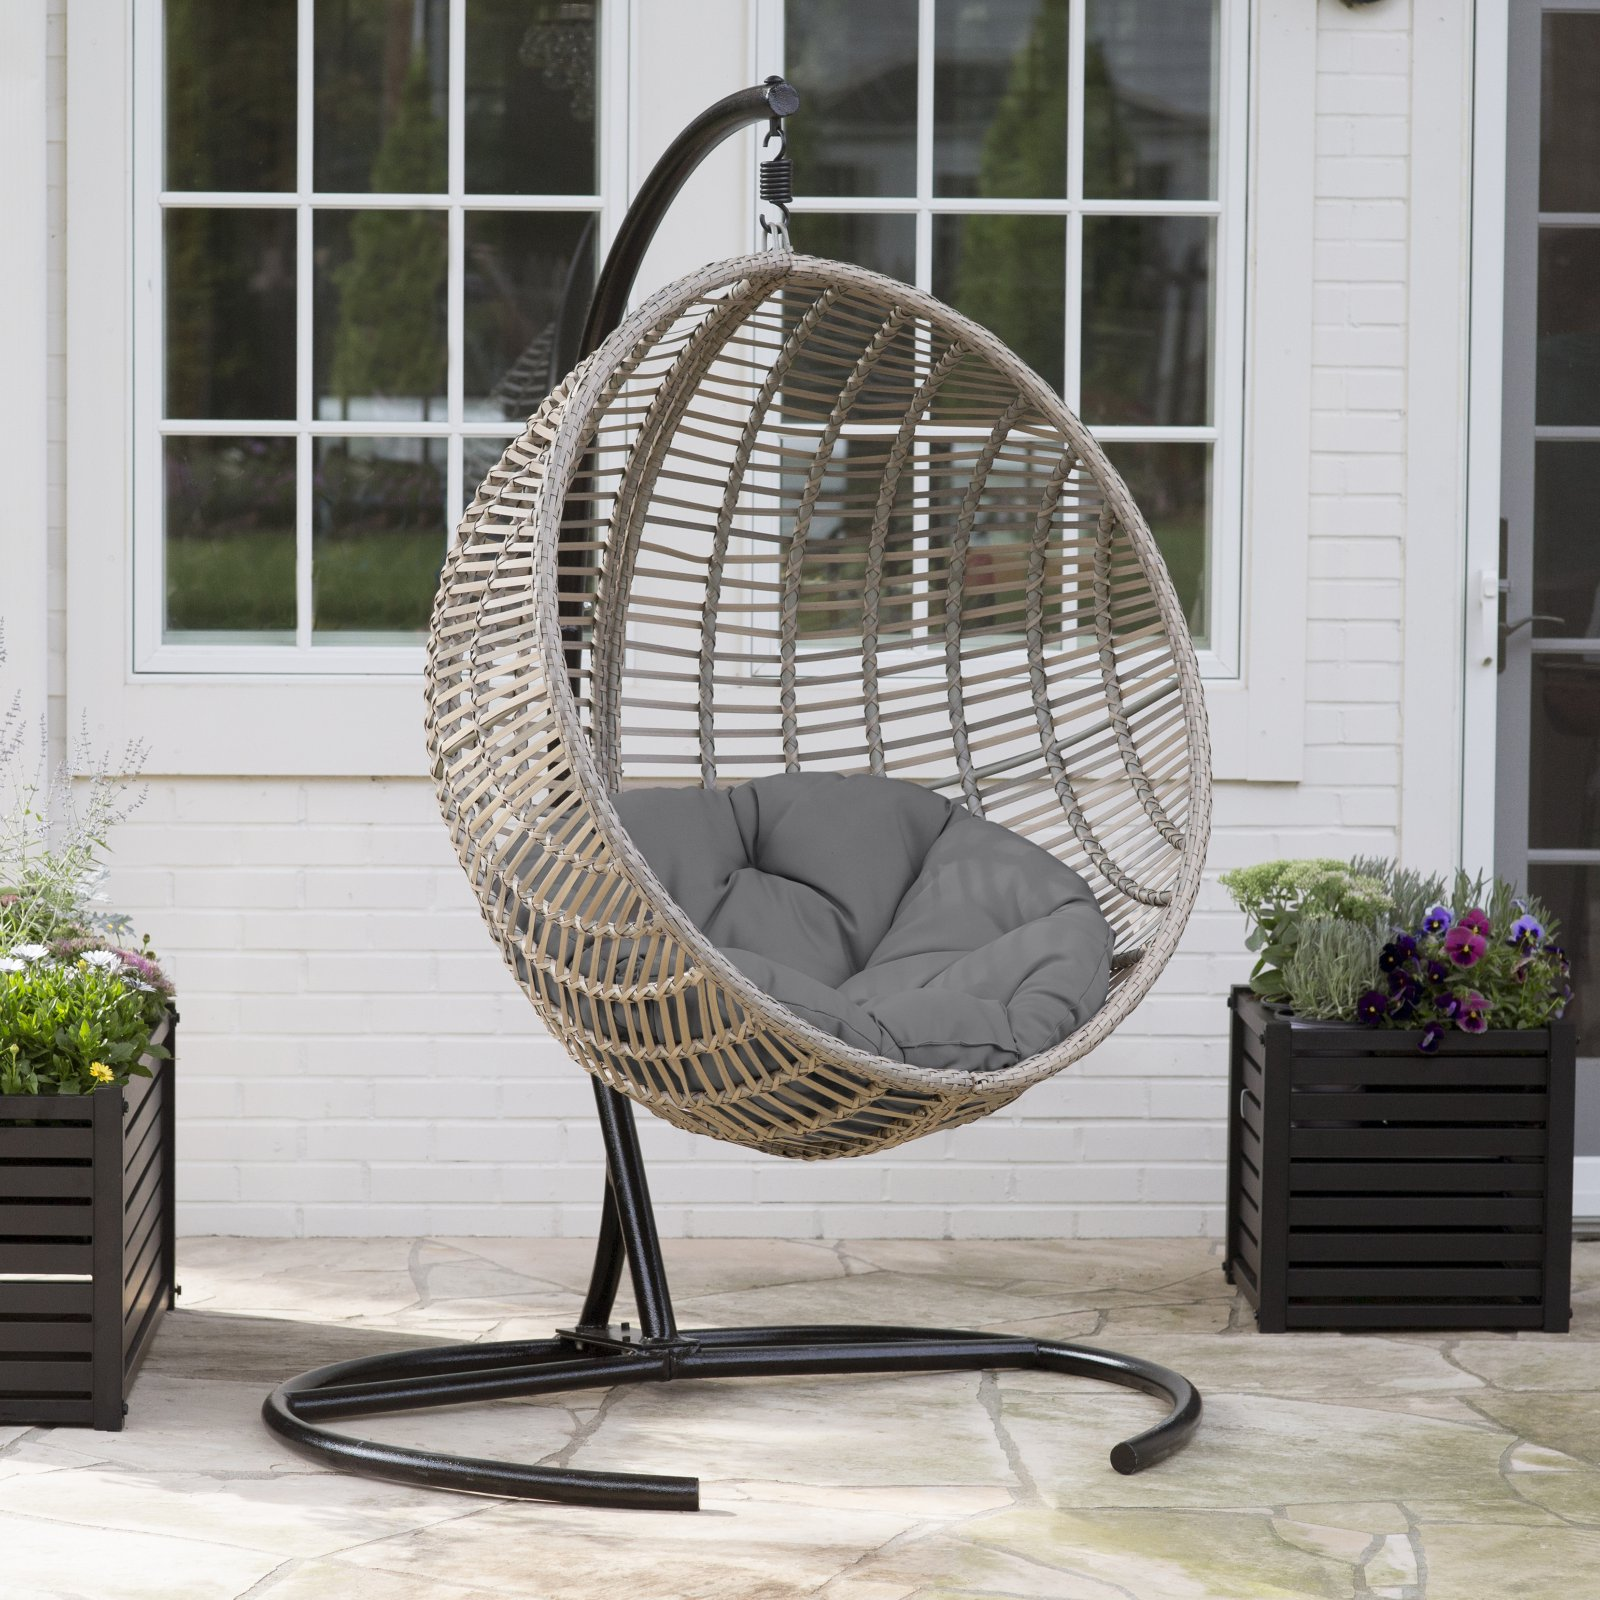 Genial Product Image Belham Living Resin Wicker Kambree Rib Hanging Egg Chair With  Cushion And Stand